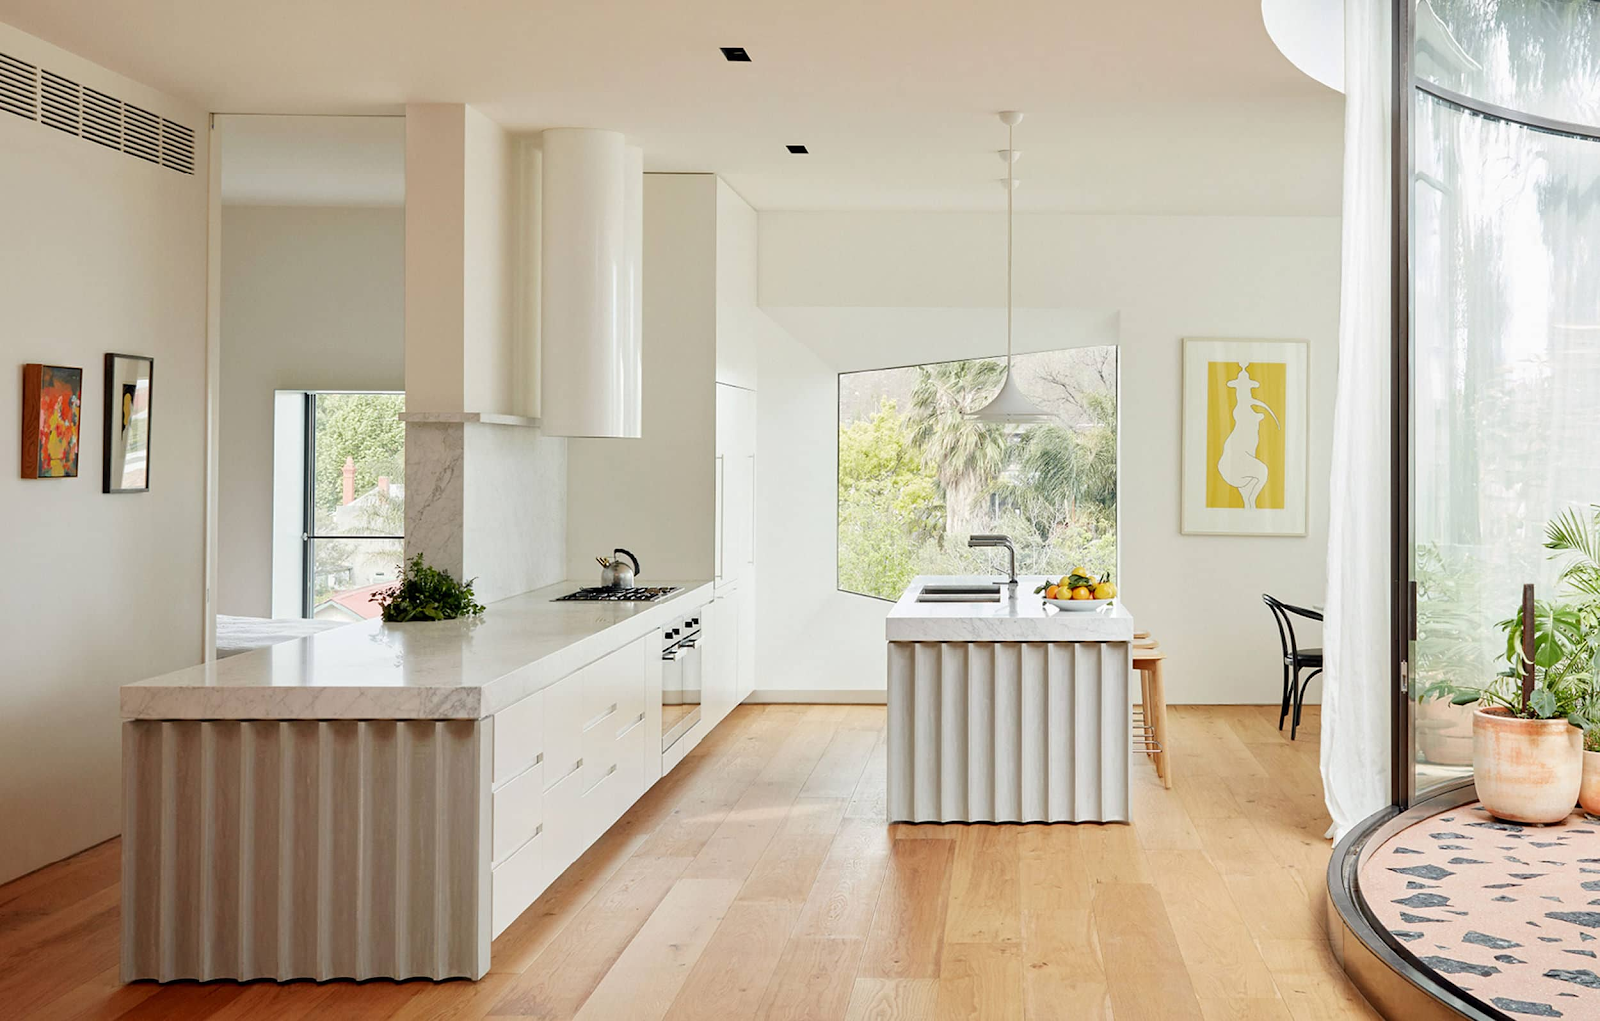 Design by  Anon Studio  | Photography by  Tom Ross  &  Freadman White  A fluted touch to the cabinetry and kitchen island are right at home amongst terrazzo, white lighting, and sleek, hardware-less cabinetry.